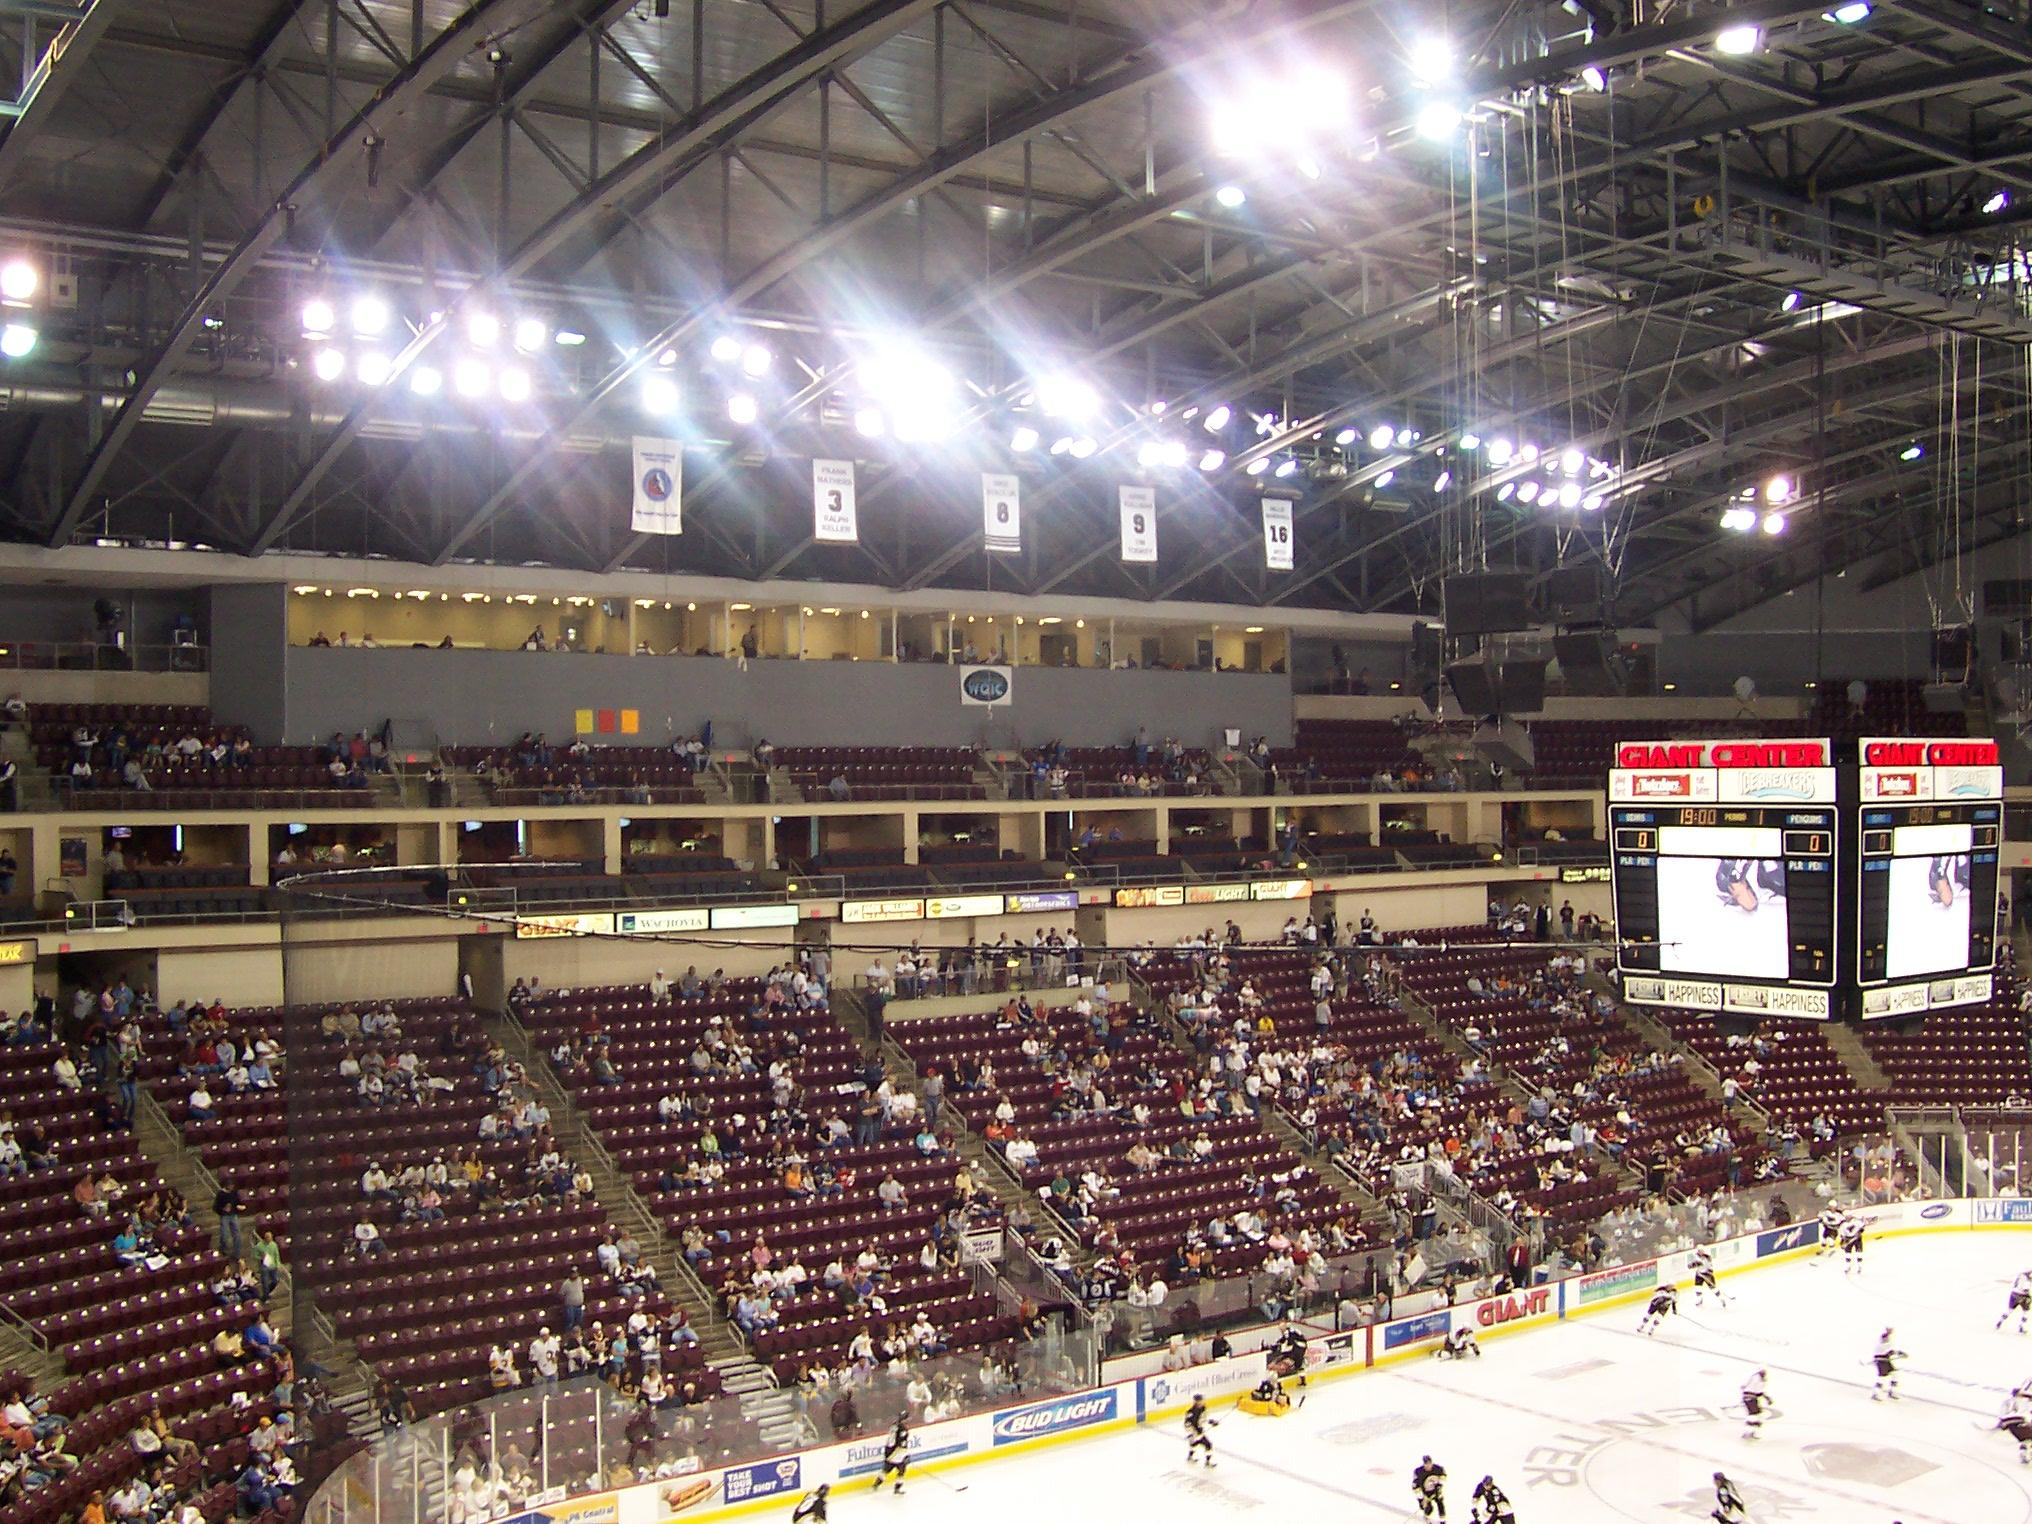 36 Giant Center 171 Stadium And Arena Visits